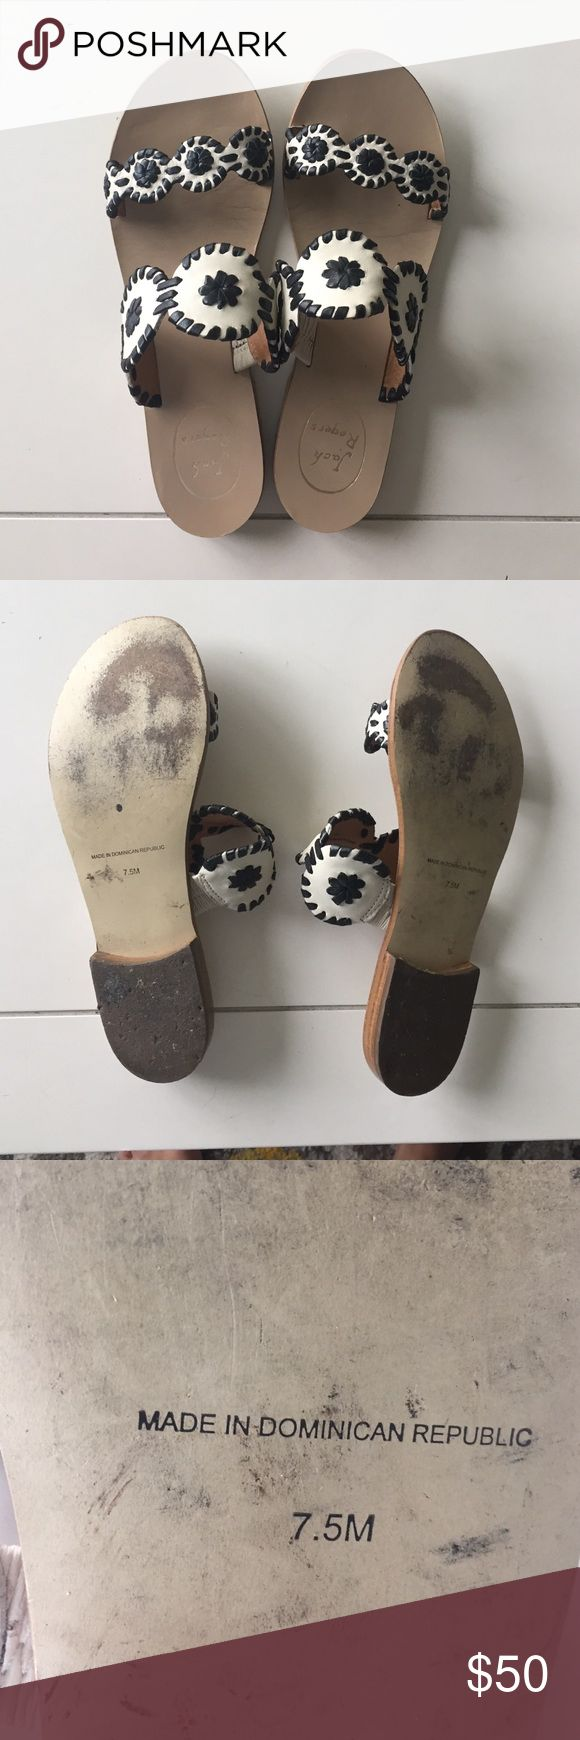 Jack Rogers sandals Great condition cream and black sandals Jack Rogers Shoes Sandals